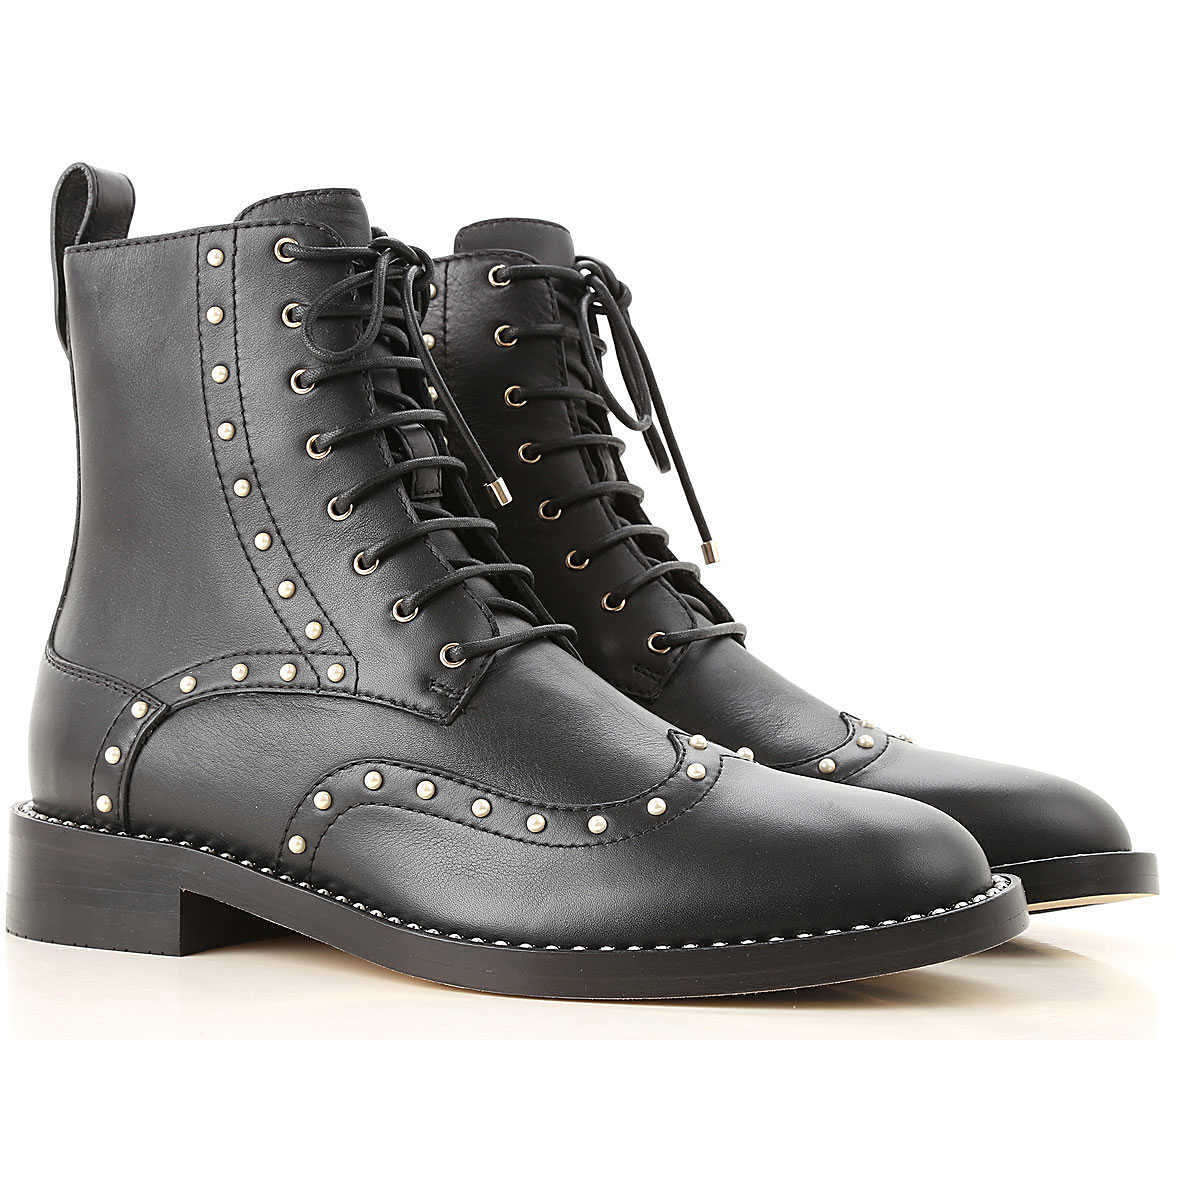 Jimmy Choo Boots for Women 2.5 3.5 Booties On Sale in Outlet UK - GOOFASH